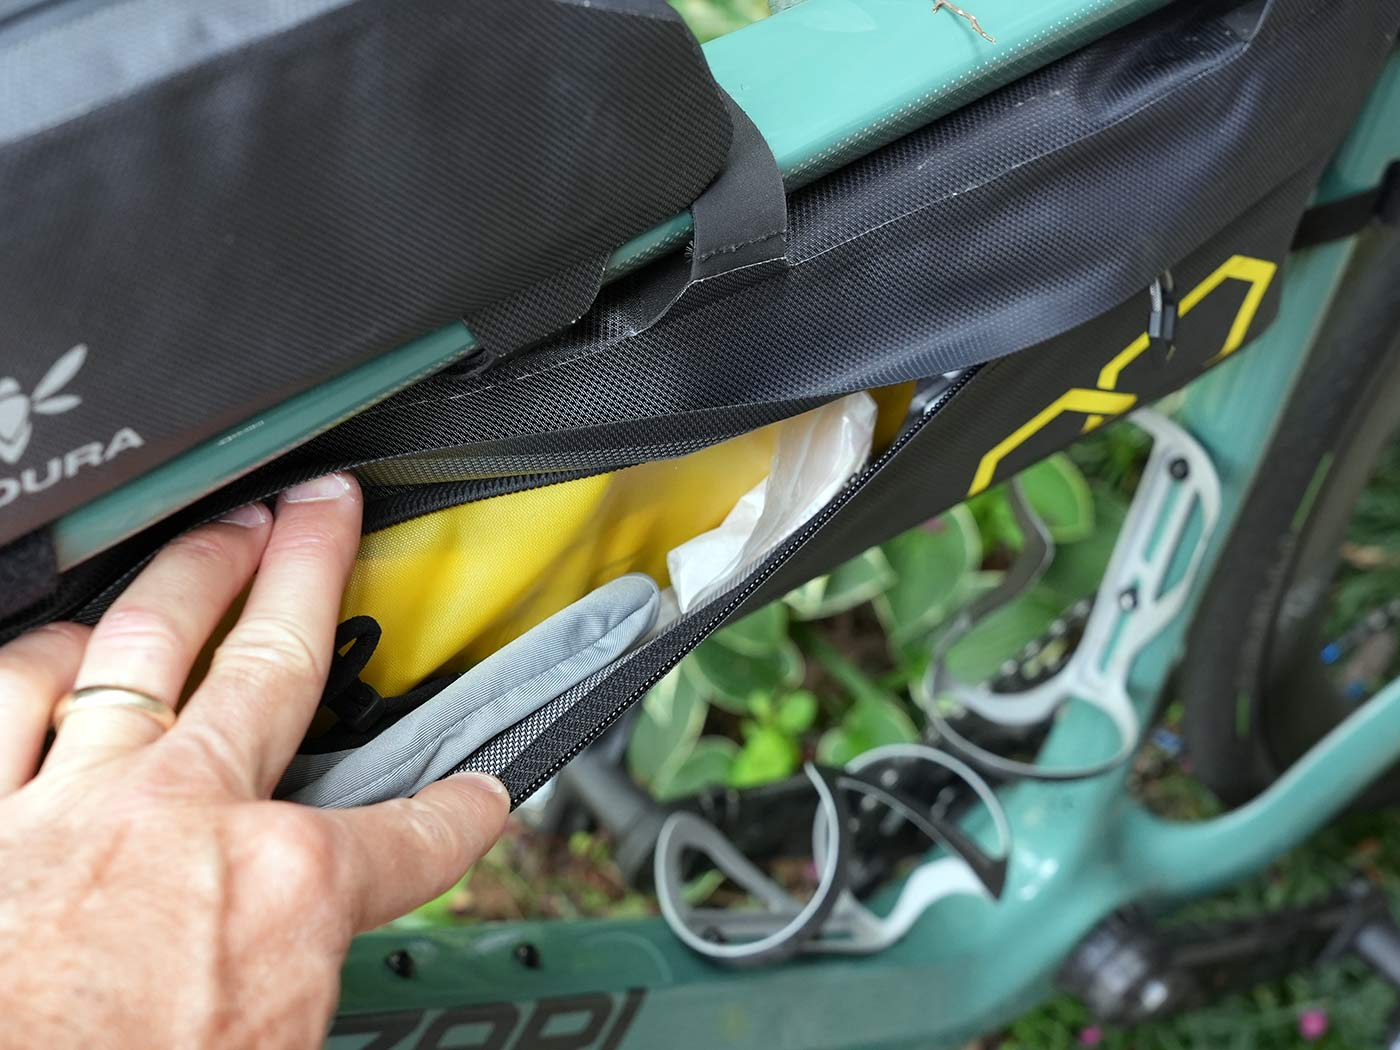 apidura expedition frame pack shown open on left side